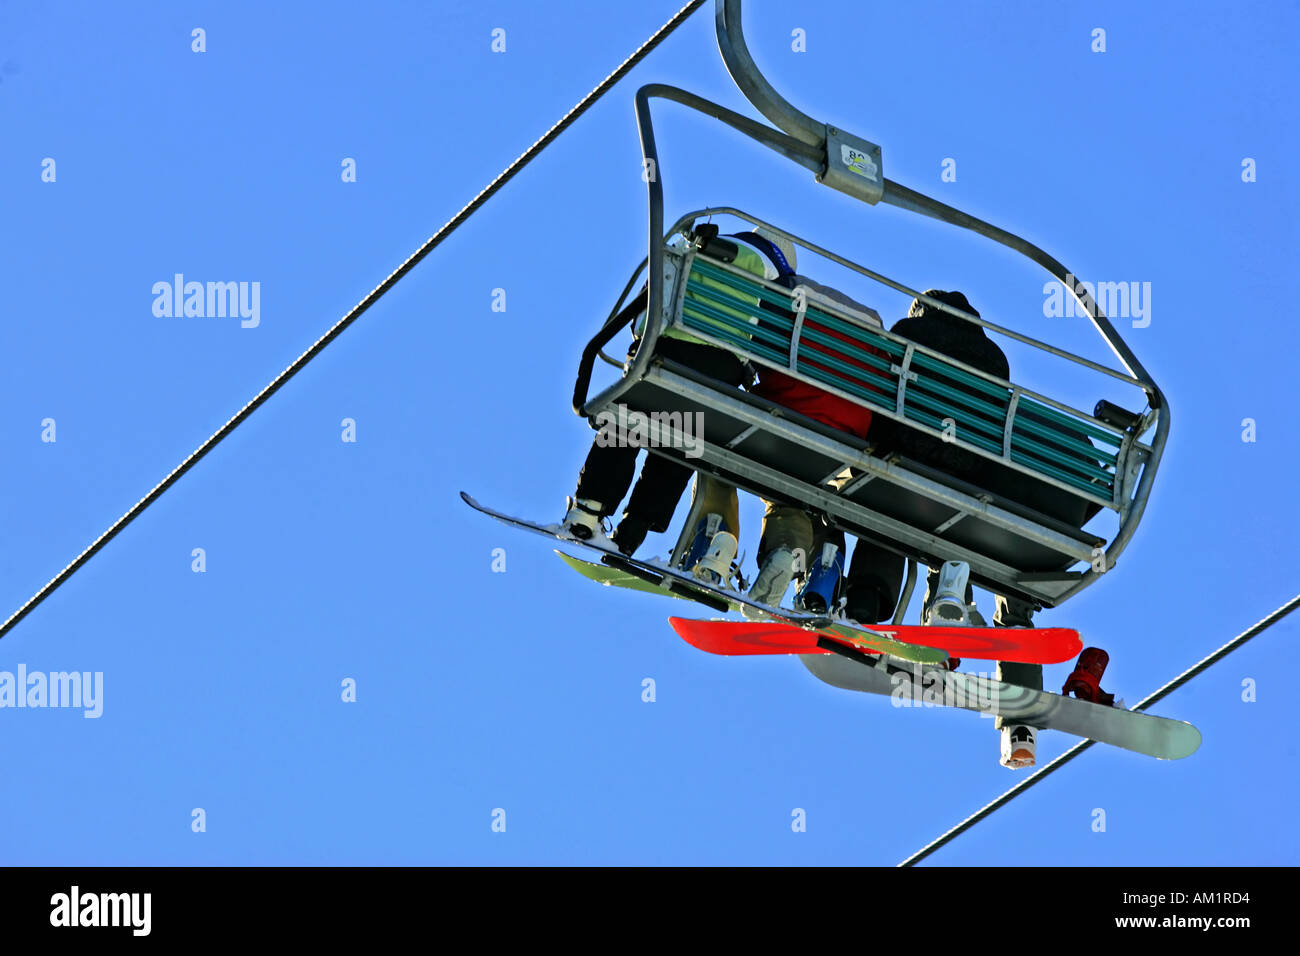 Thredbo skiing - Stock Image